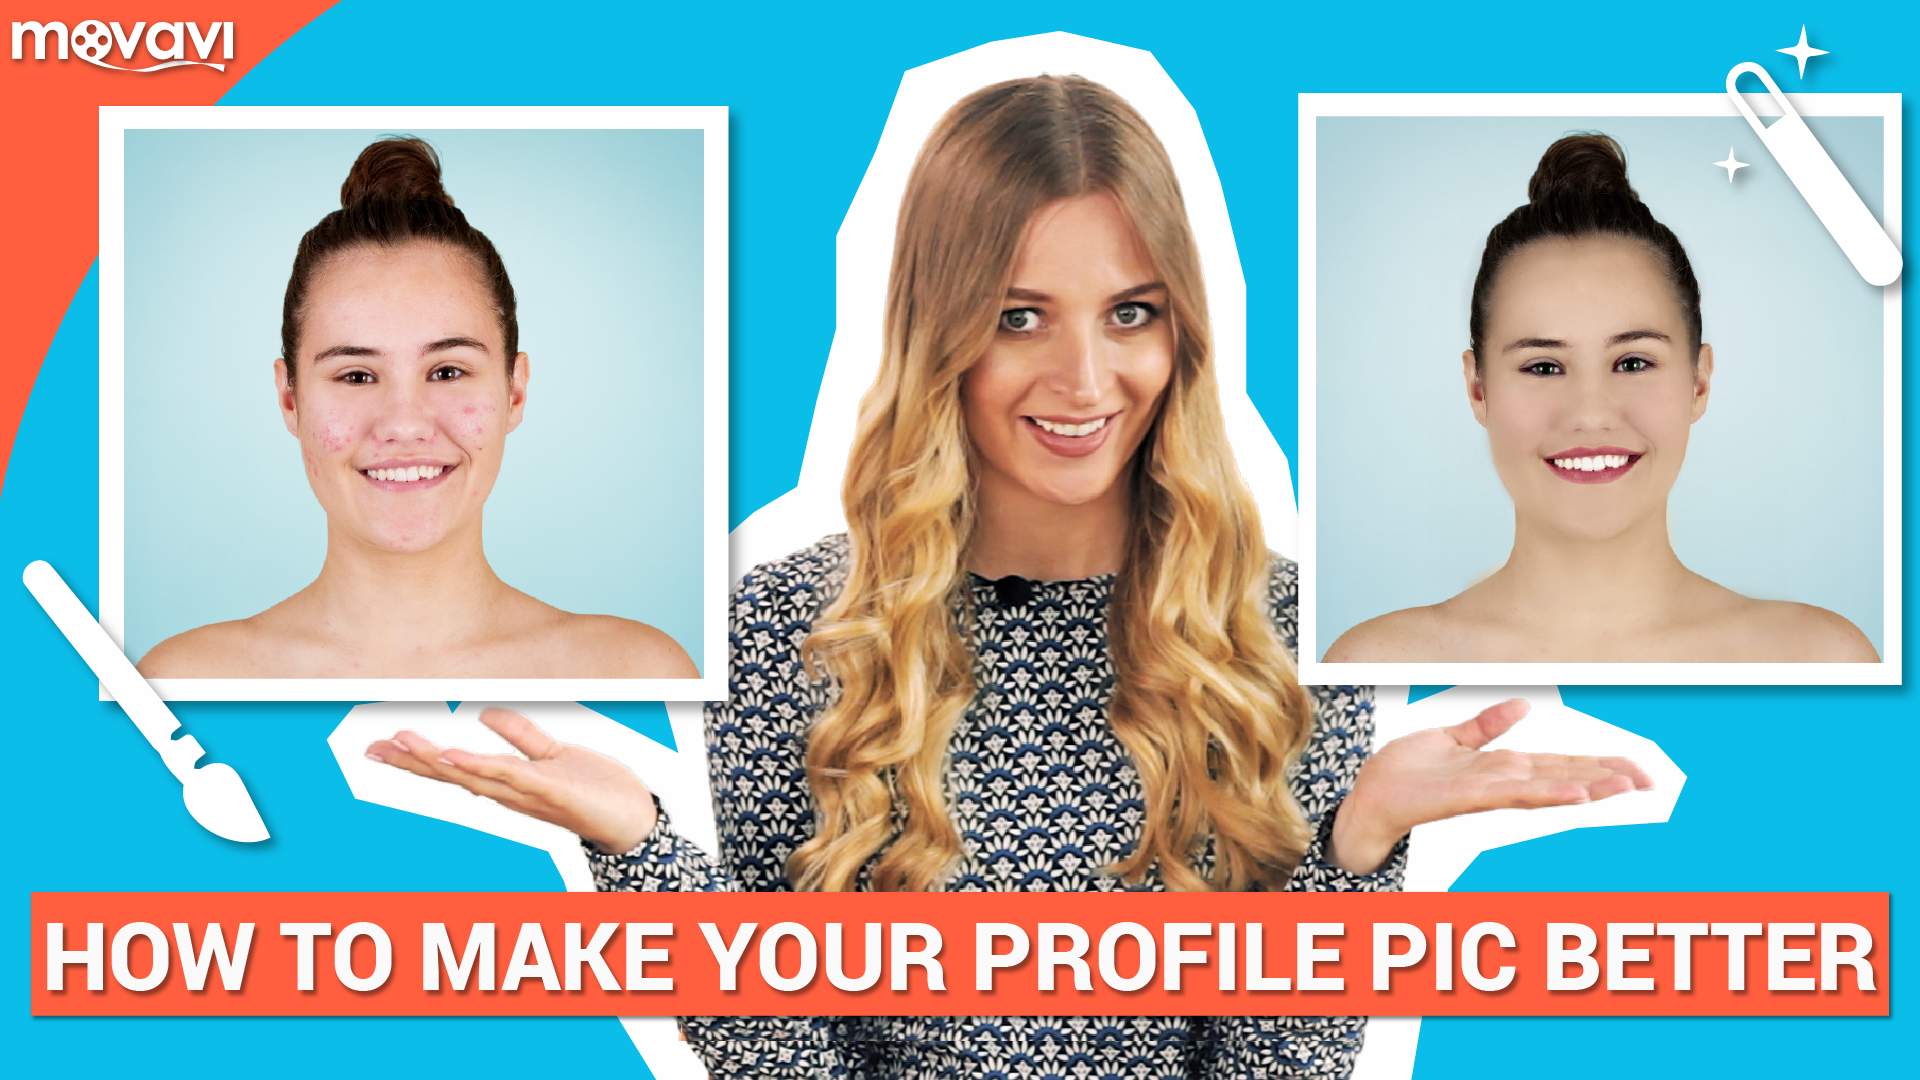 Photo retouching for beginners: making an avatar pic